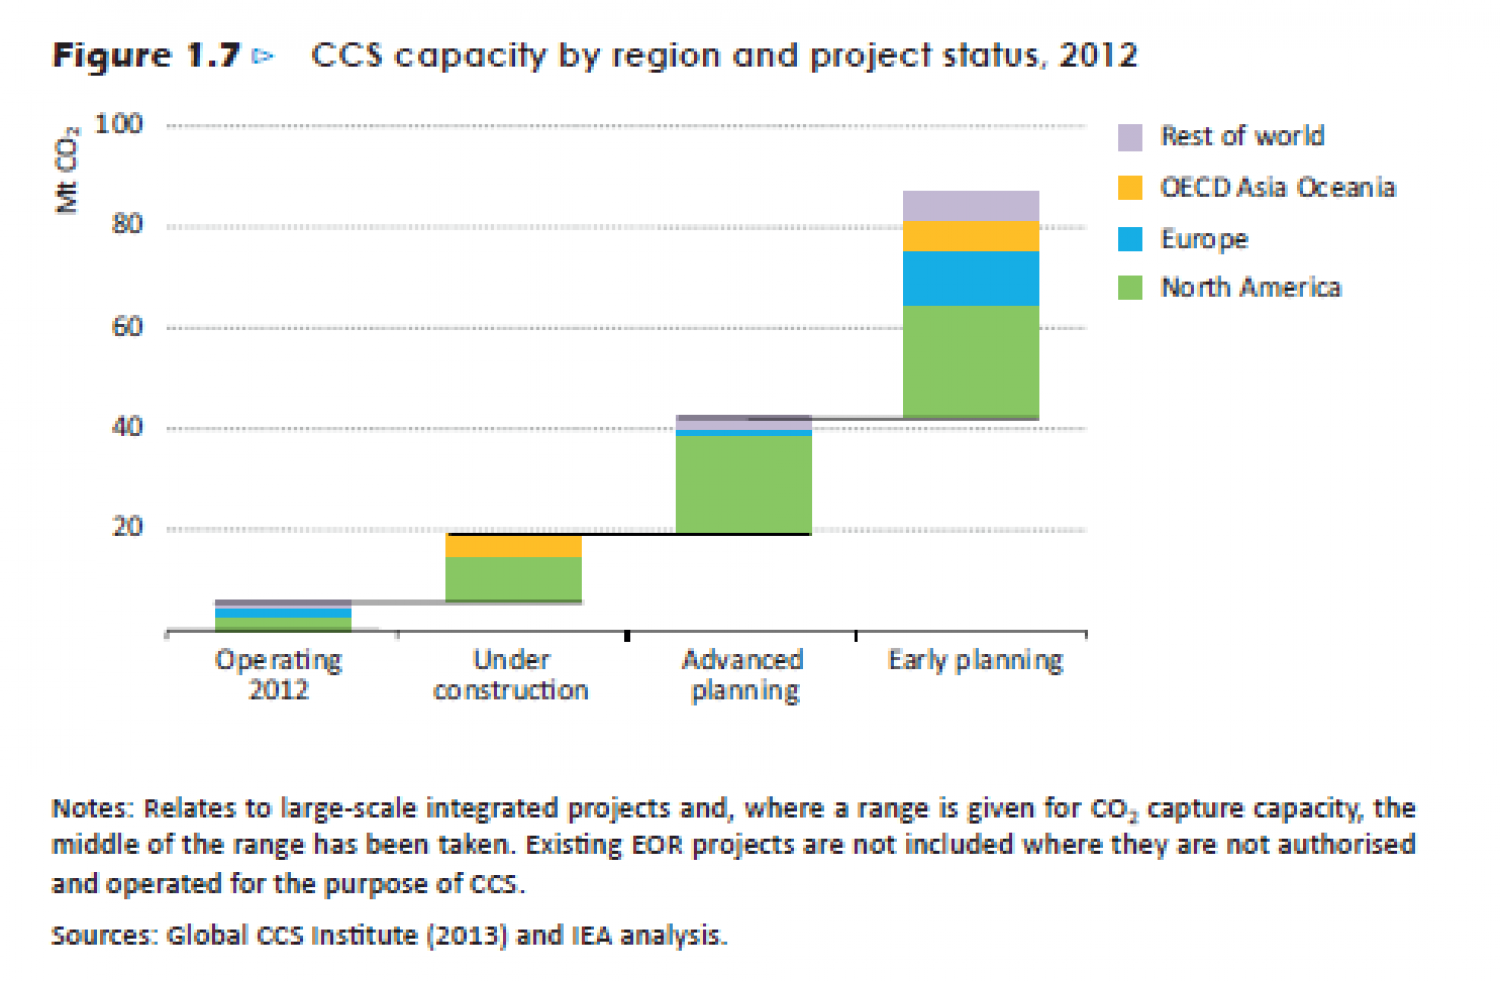 CCS capacity  by region and projects status, 2012 Infographic